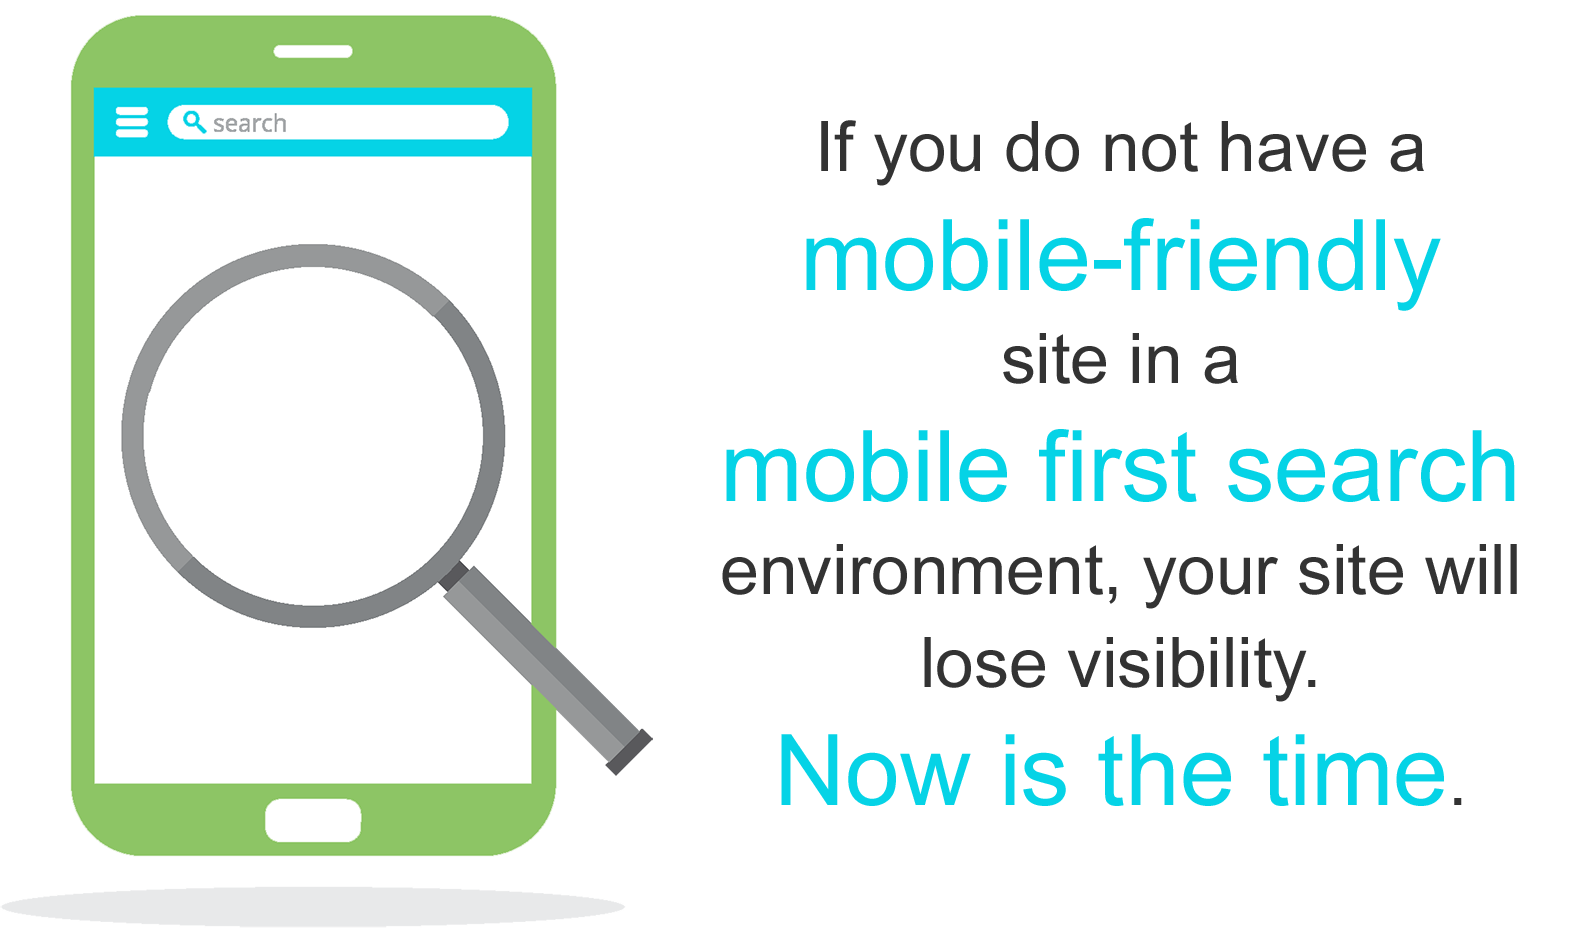 If you do not have a mobile-friendly site in a mobile first search environment, your site will lose visibility. Again, now is the time.